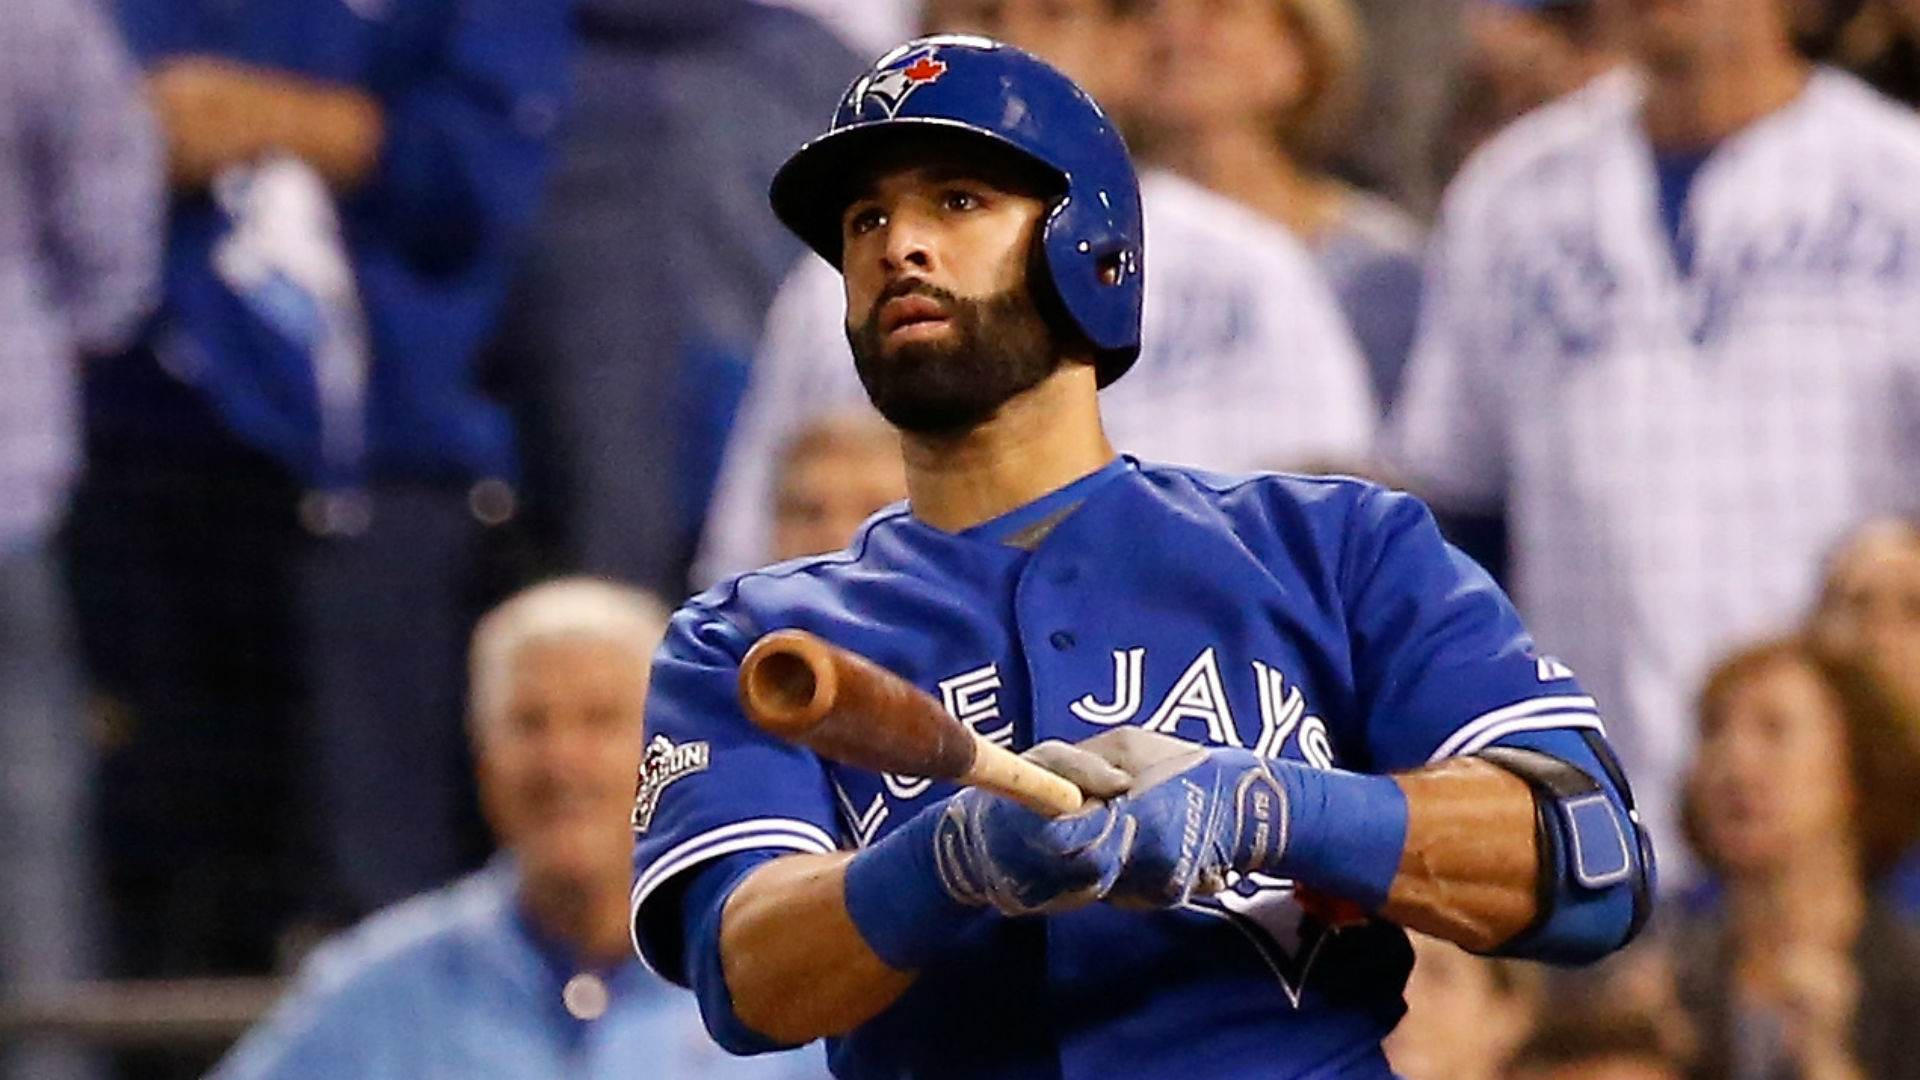 Mets Inquire On OF Jose Bautista